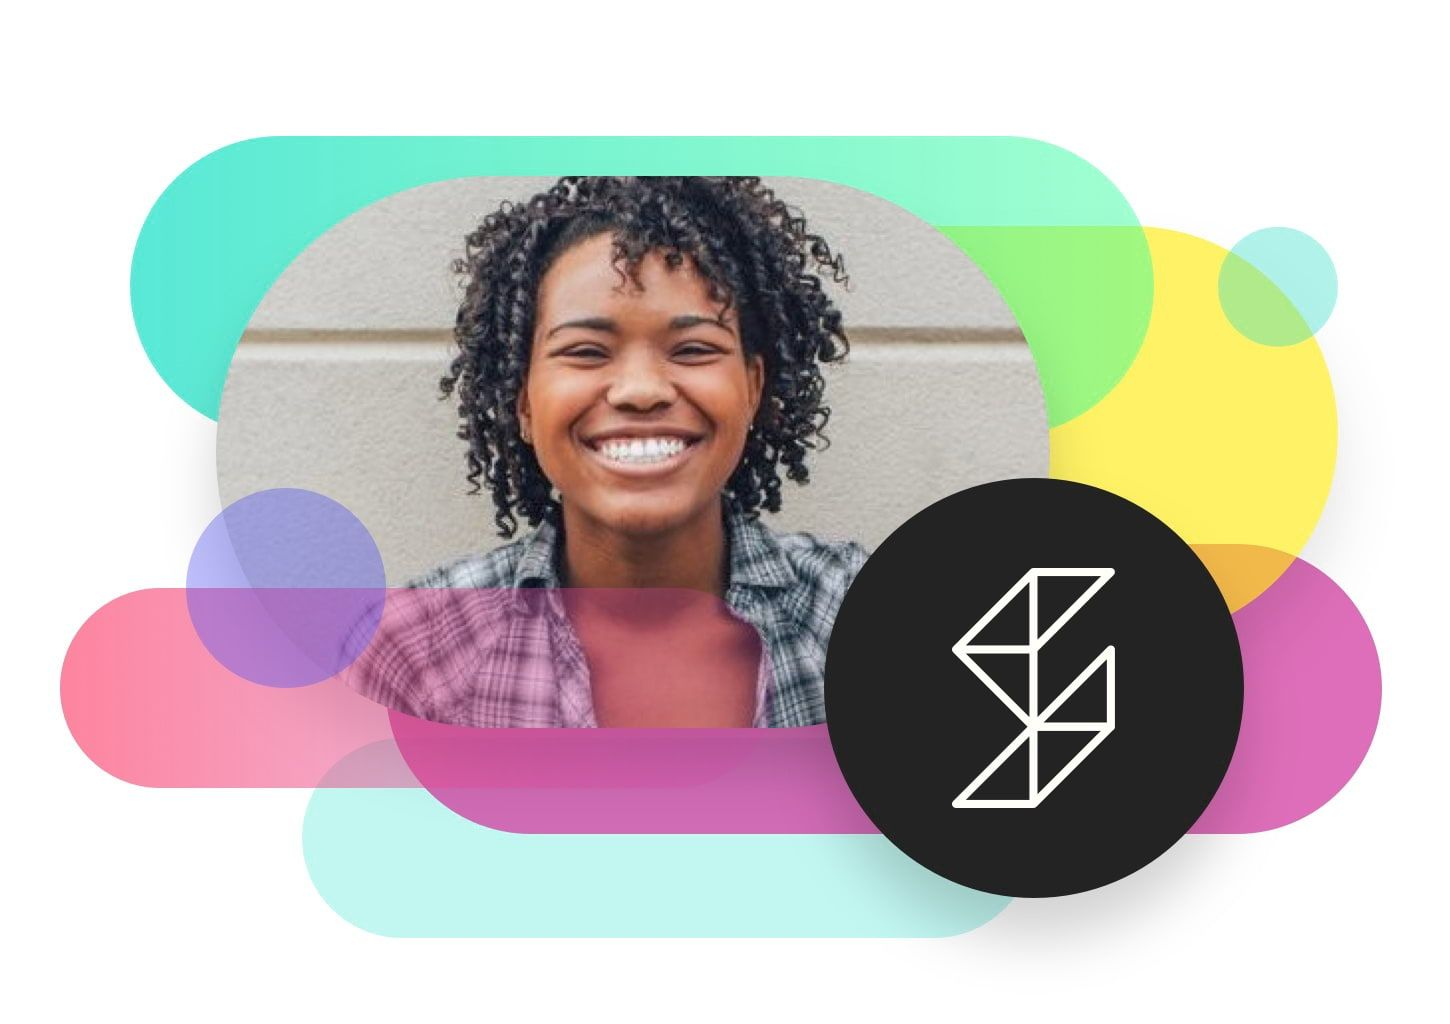 Superformula's Iesha Smith Talks Product Design and Working Remotely